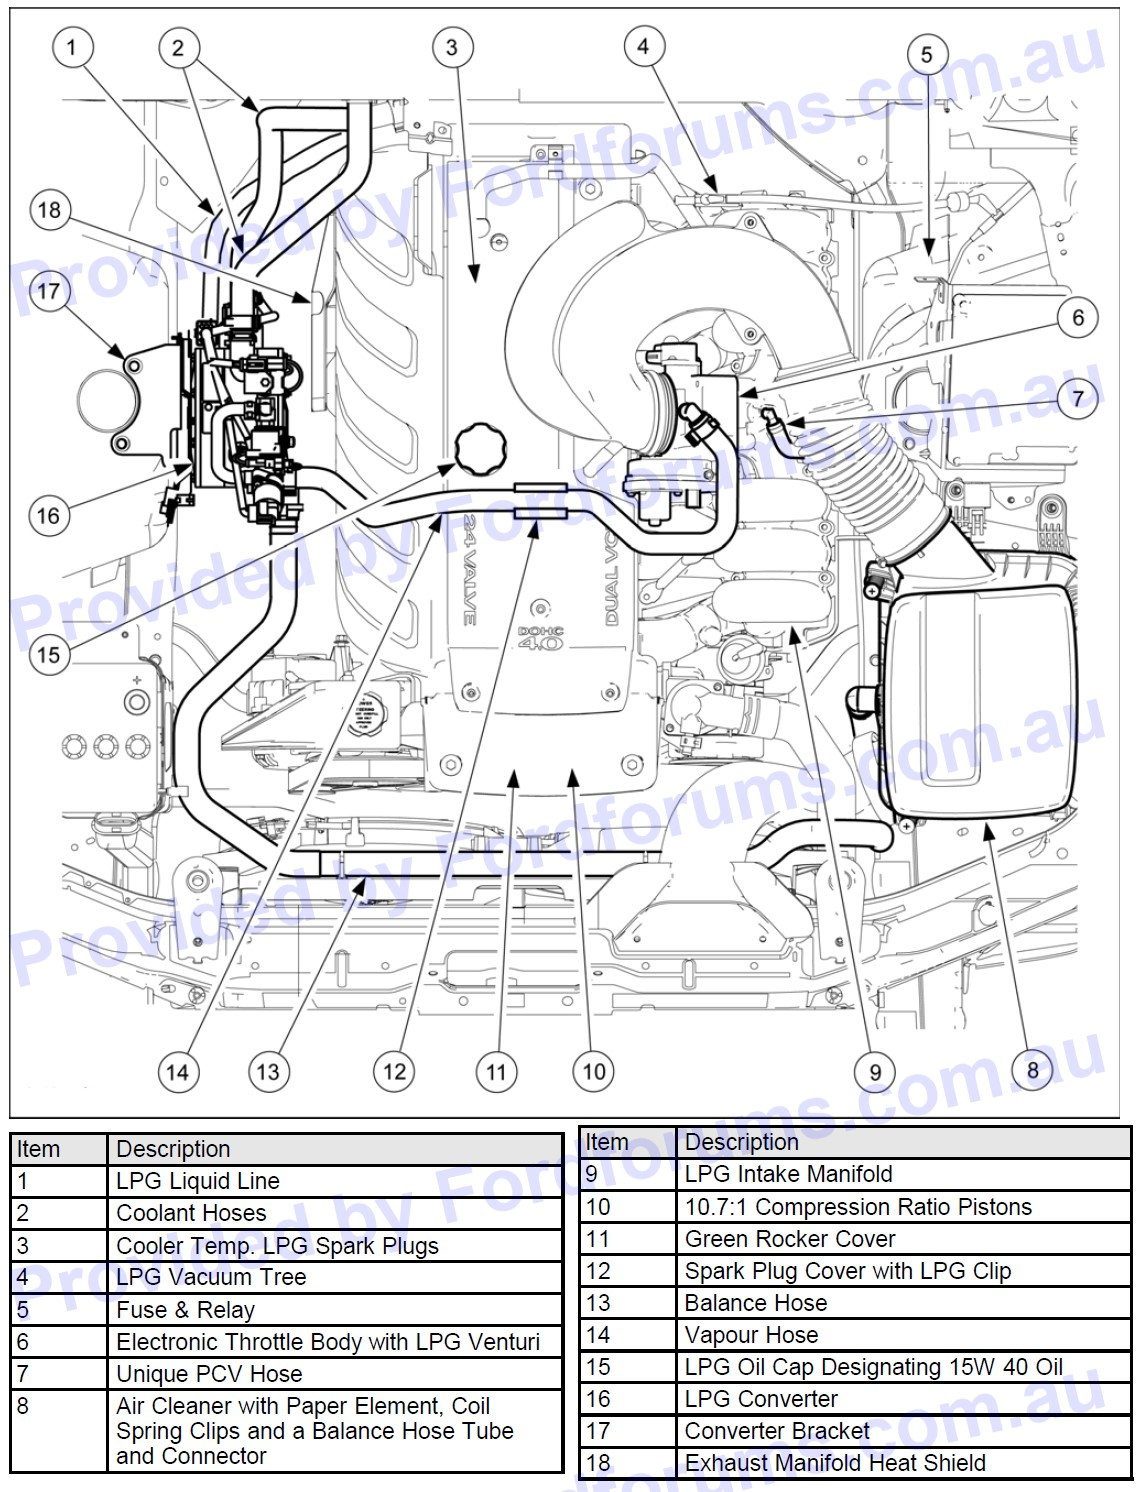 1990 Mustang Wiring Diagram Colored besides Ef Falcon Wiring Diagram also United States Map With States Printable as well Car Engine Diagram Quotes also 351 Windsor Marine Inboard Engine Wiring Diagrams. on ford fuel system diagrams